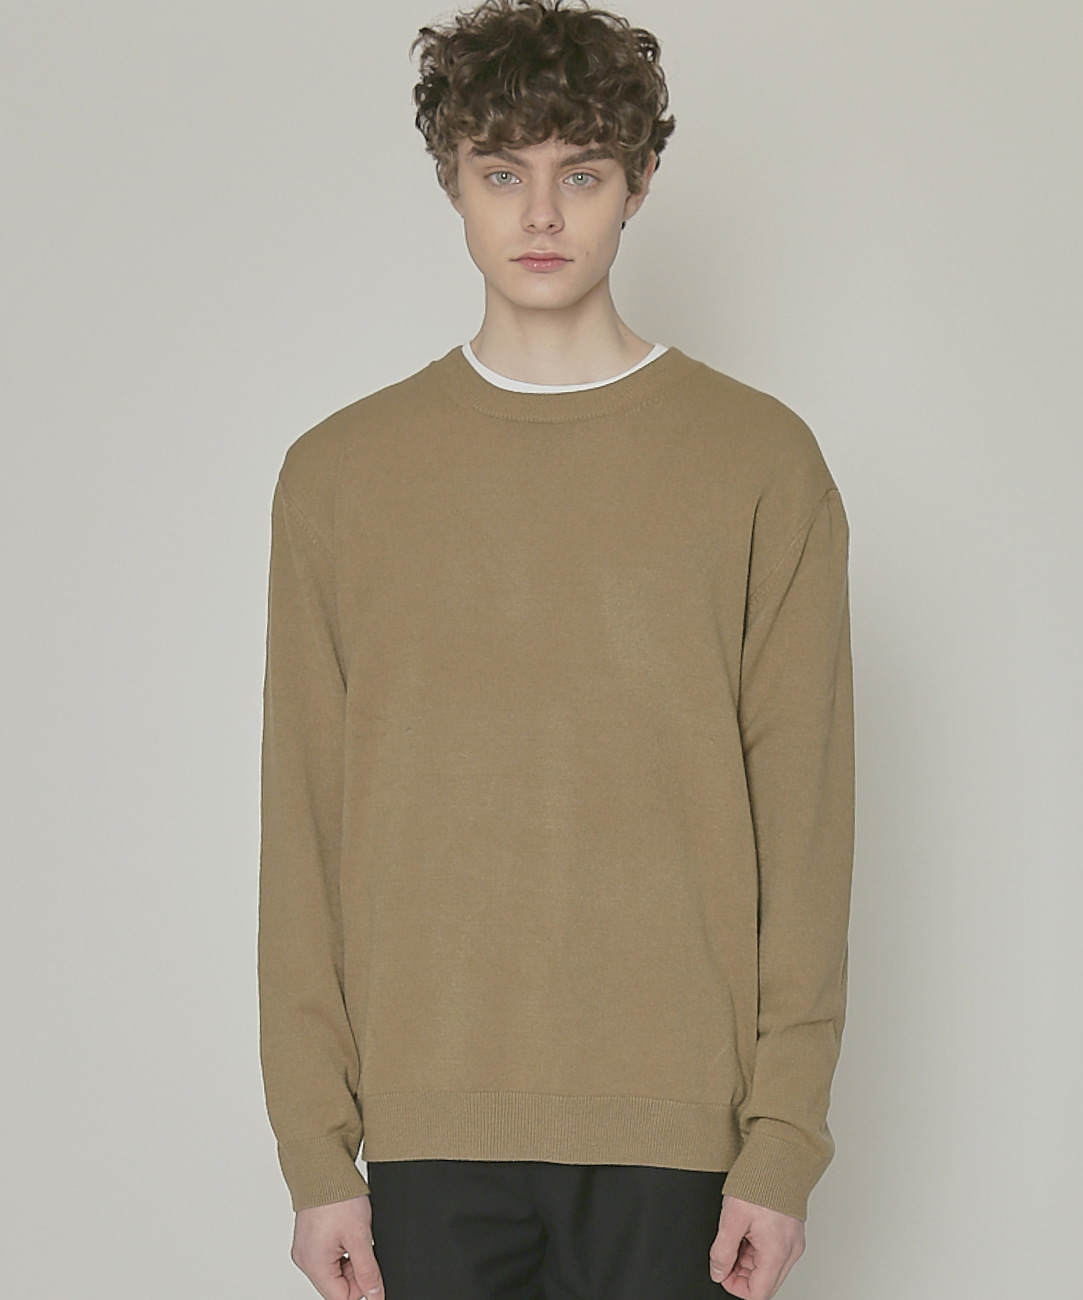 DWS SOFT BASIC ROUND SWEATER(DARK OLIVE)